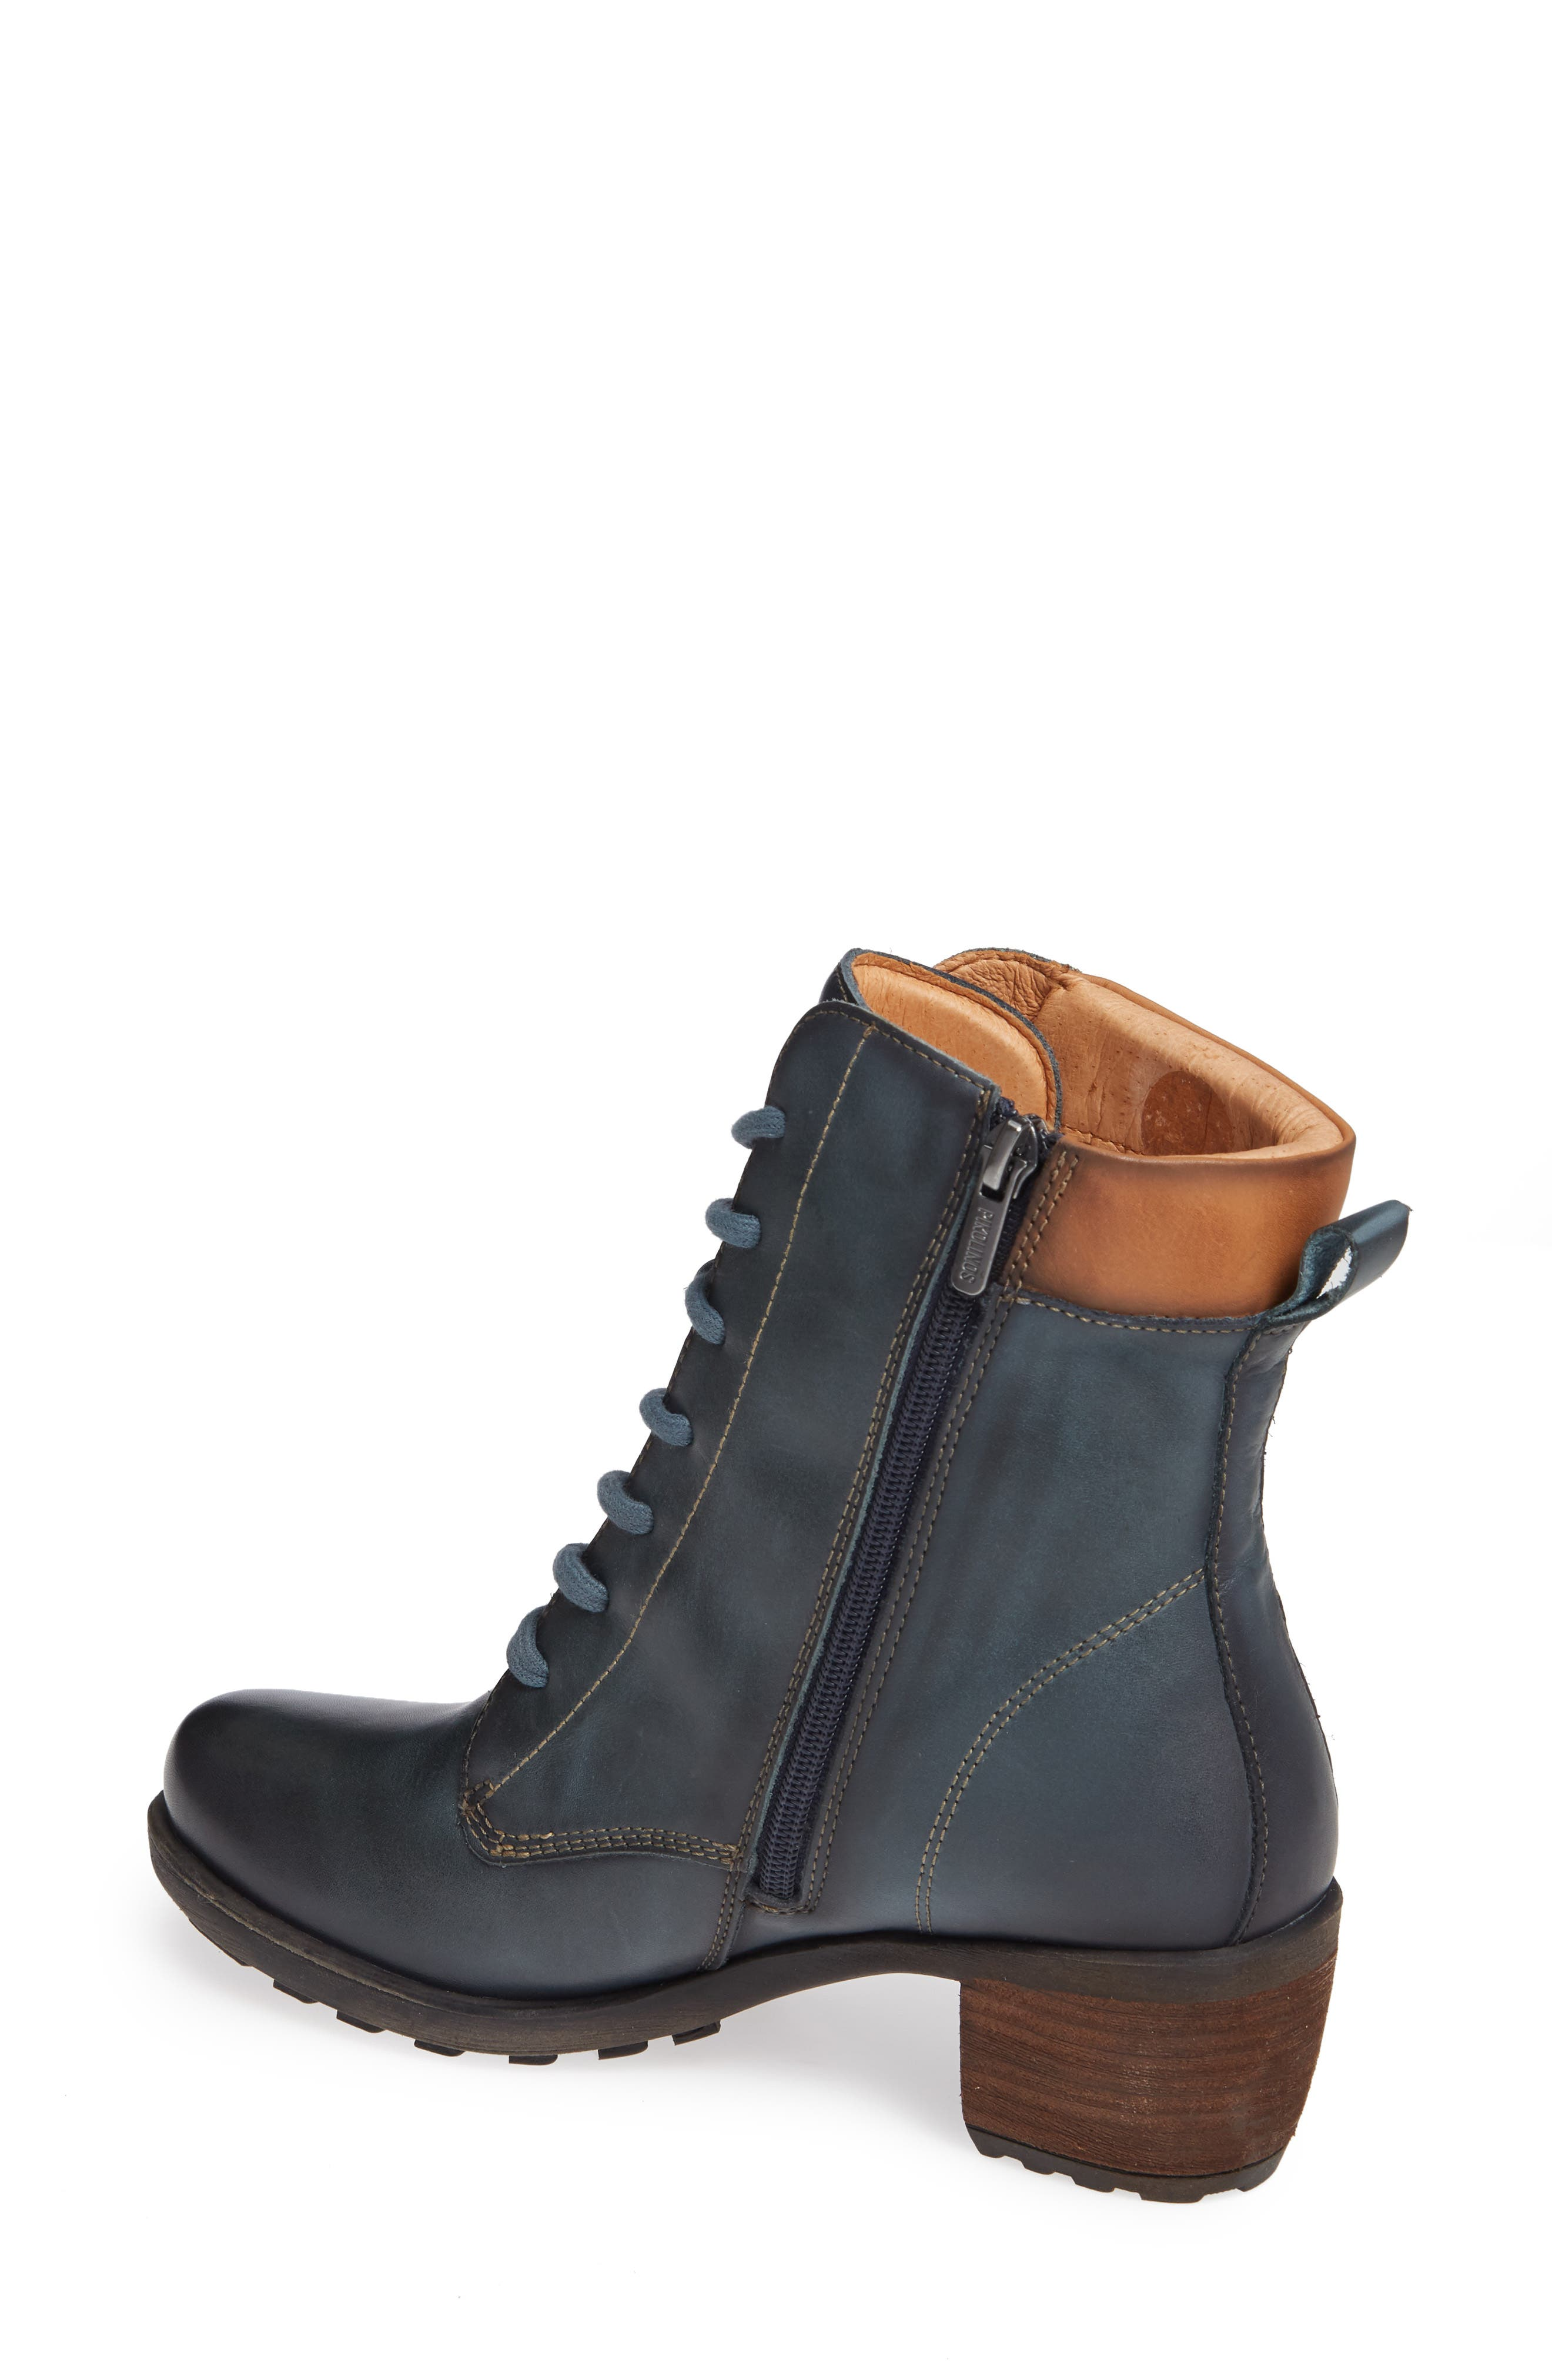 Le Mans Embroidered Lace-Up Bootie,                             Alternate thumbnail 2, color,                             OCEAN LEATHER